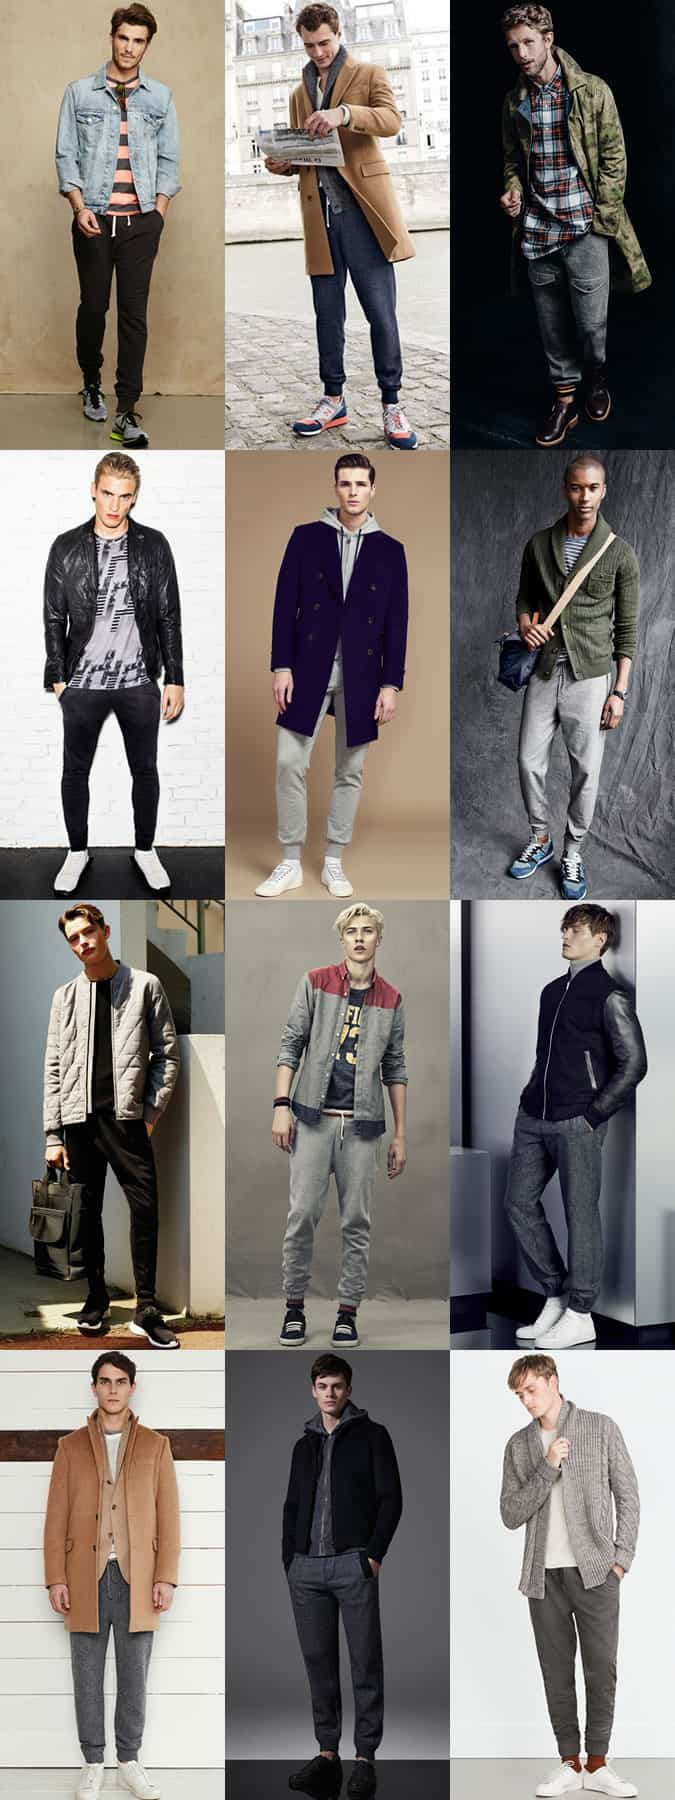 6 Trouser Styles You Should Consider | FashionBeans